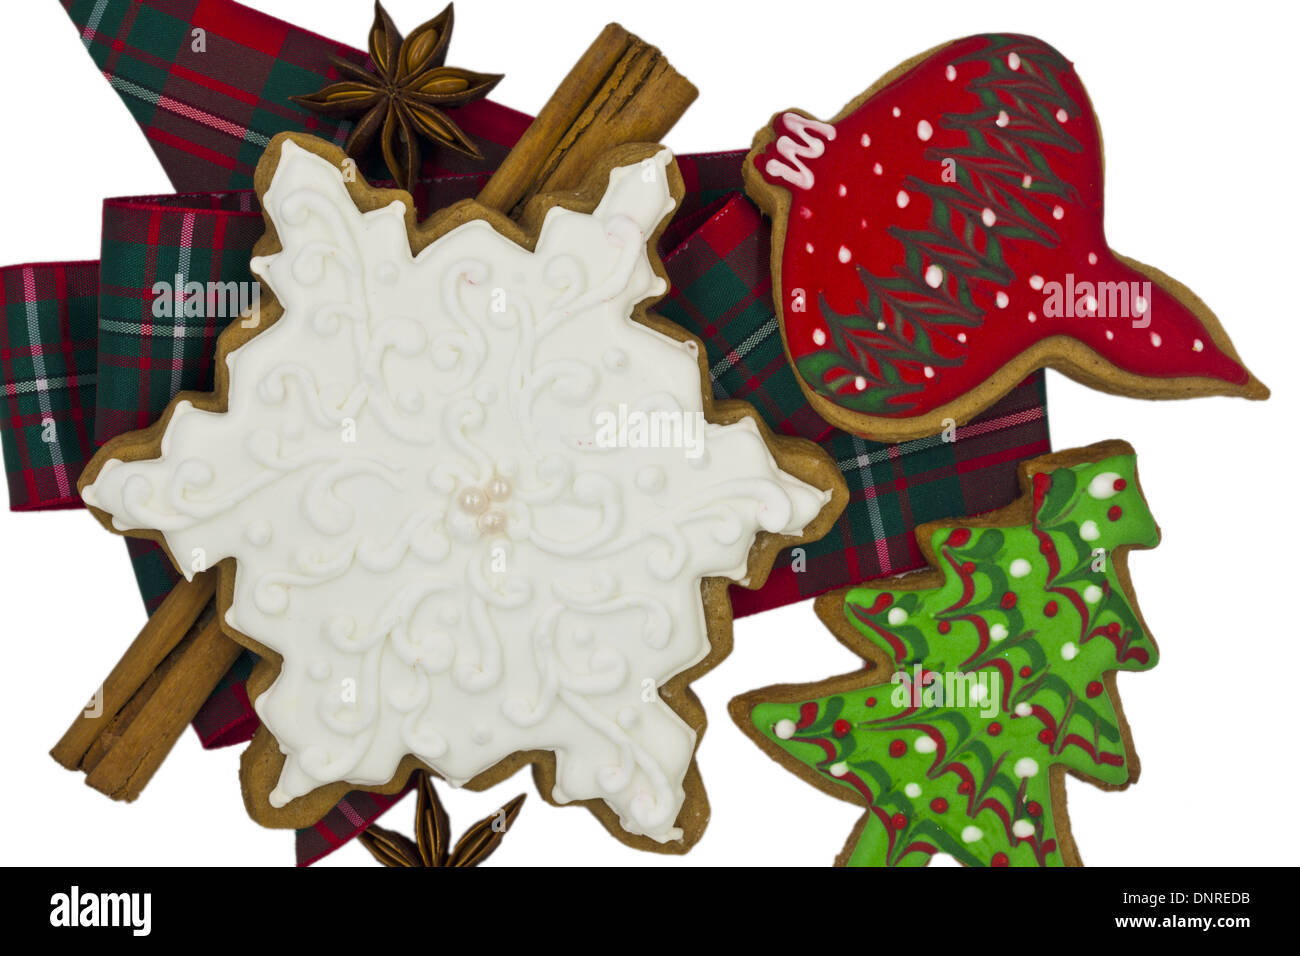 Iced cookies and spices with tartan ribbon isolated on white. - Stock Image